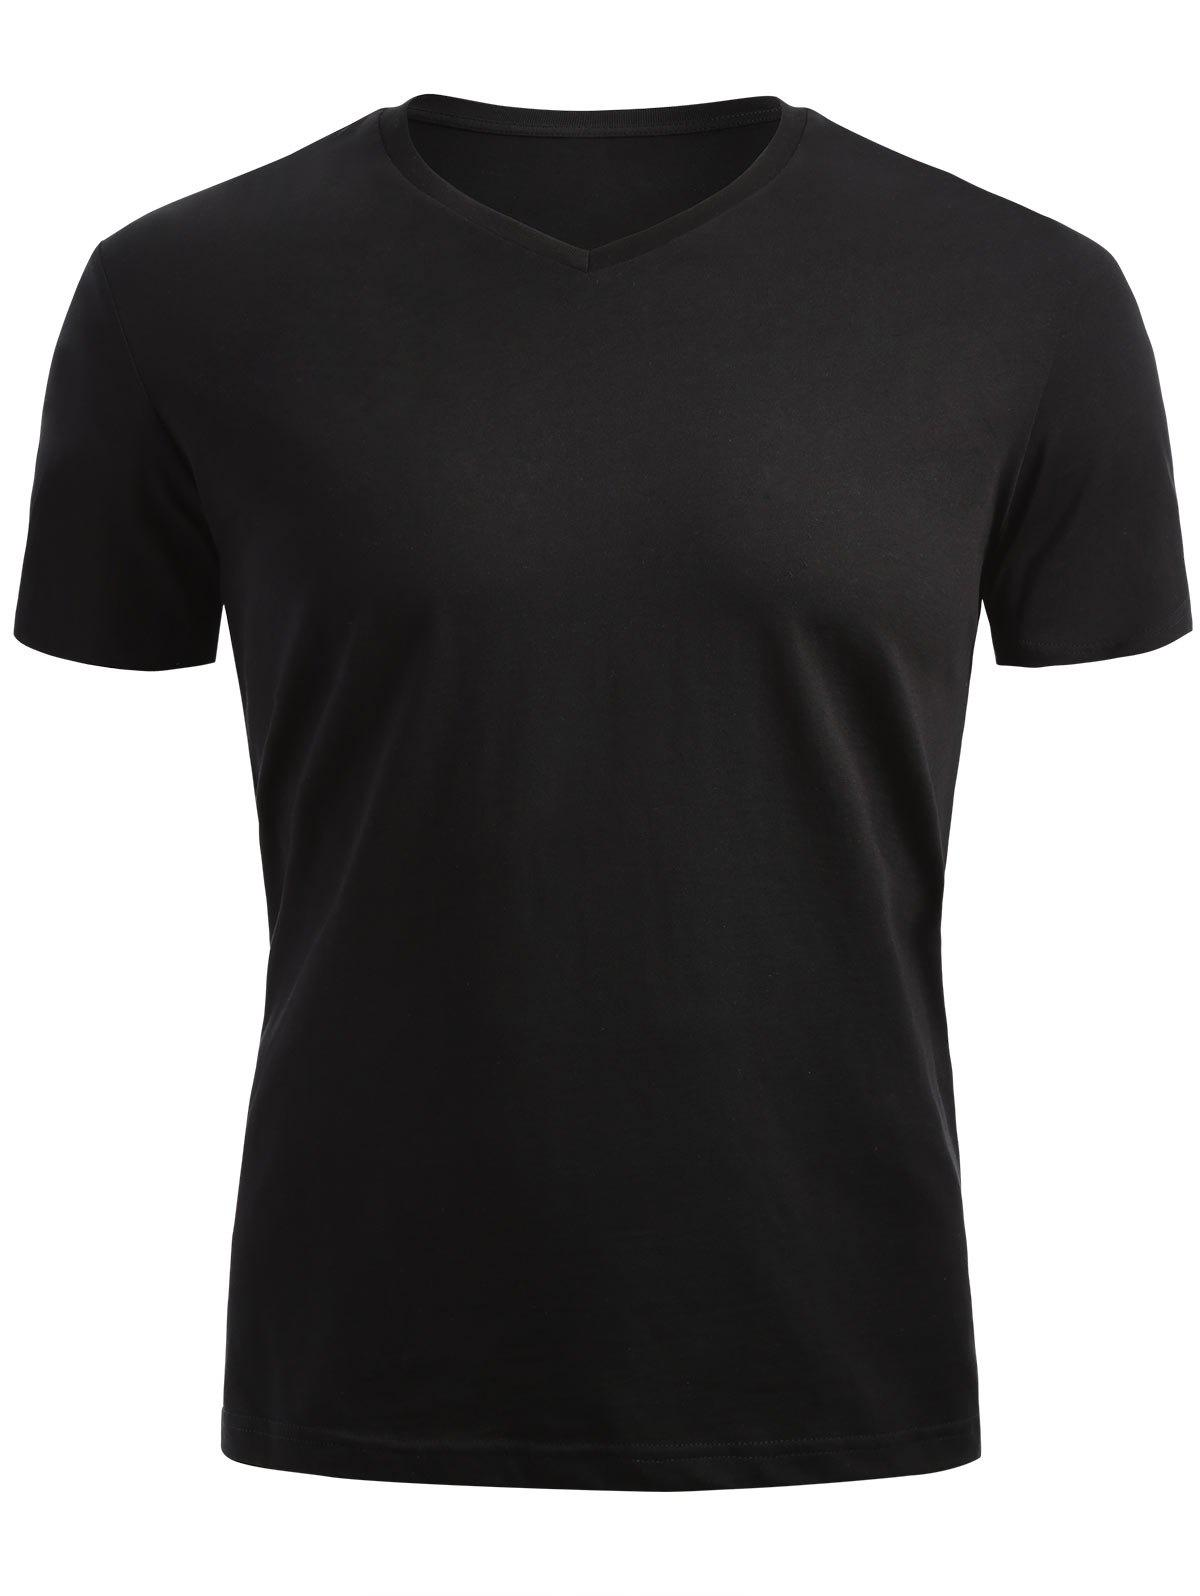 V Neck Short Sleeve T-shirt - Noir M